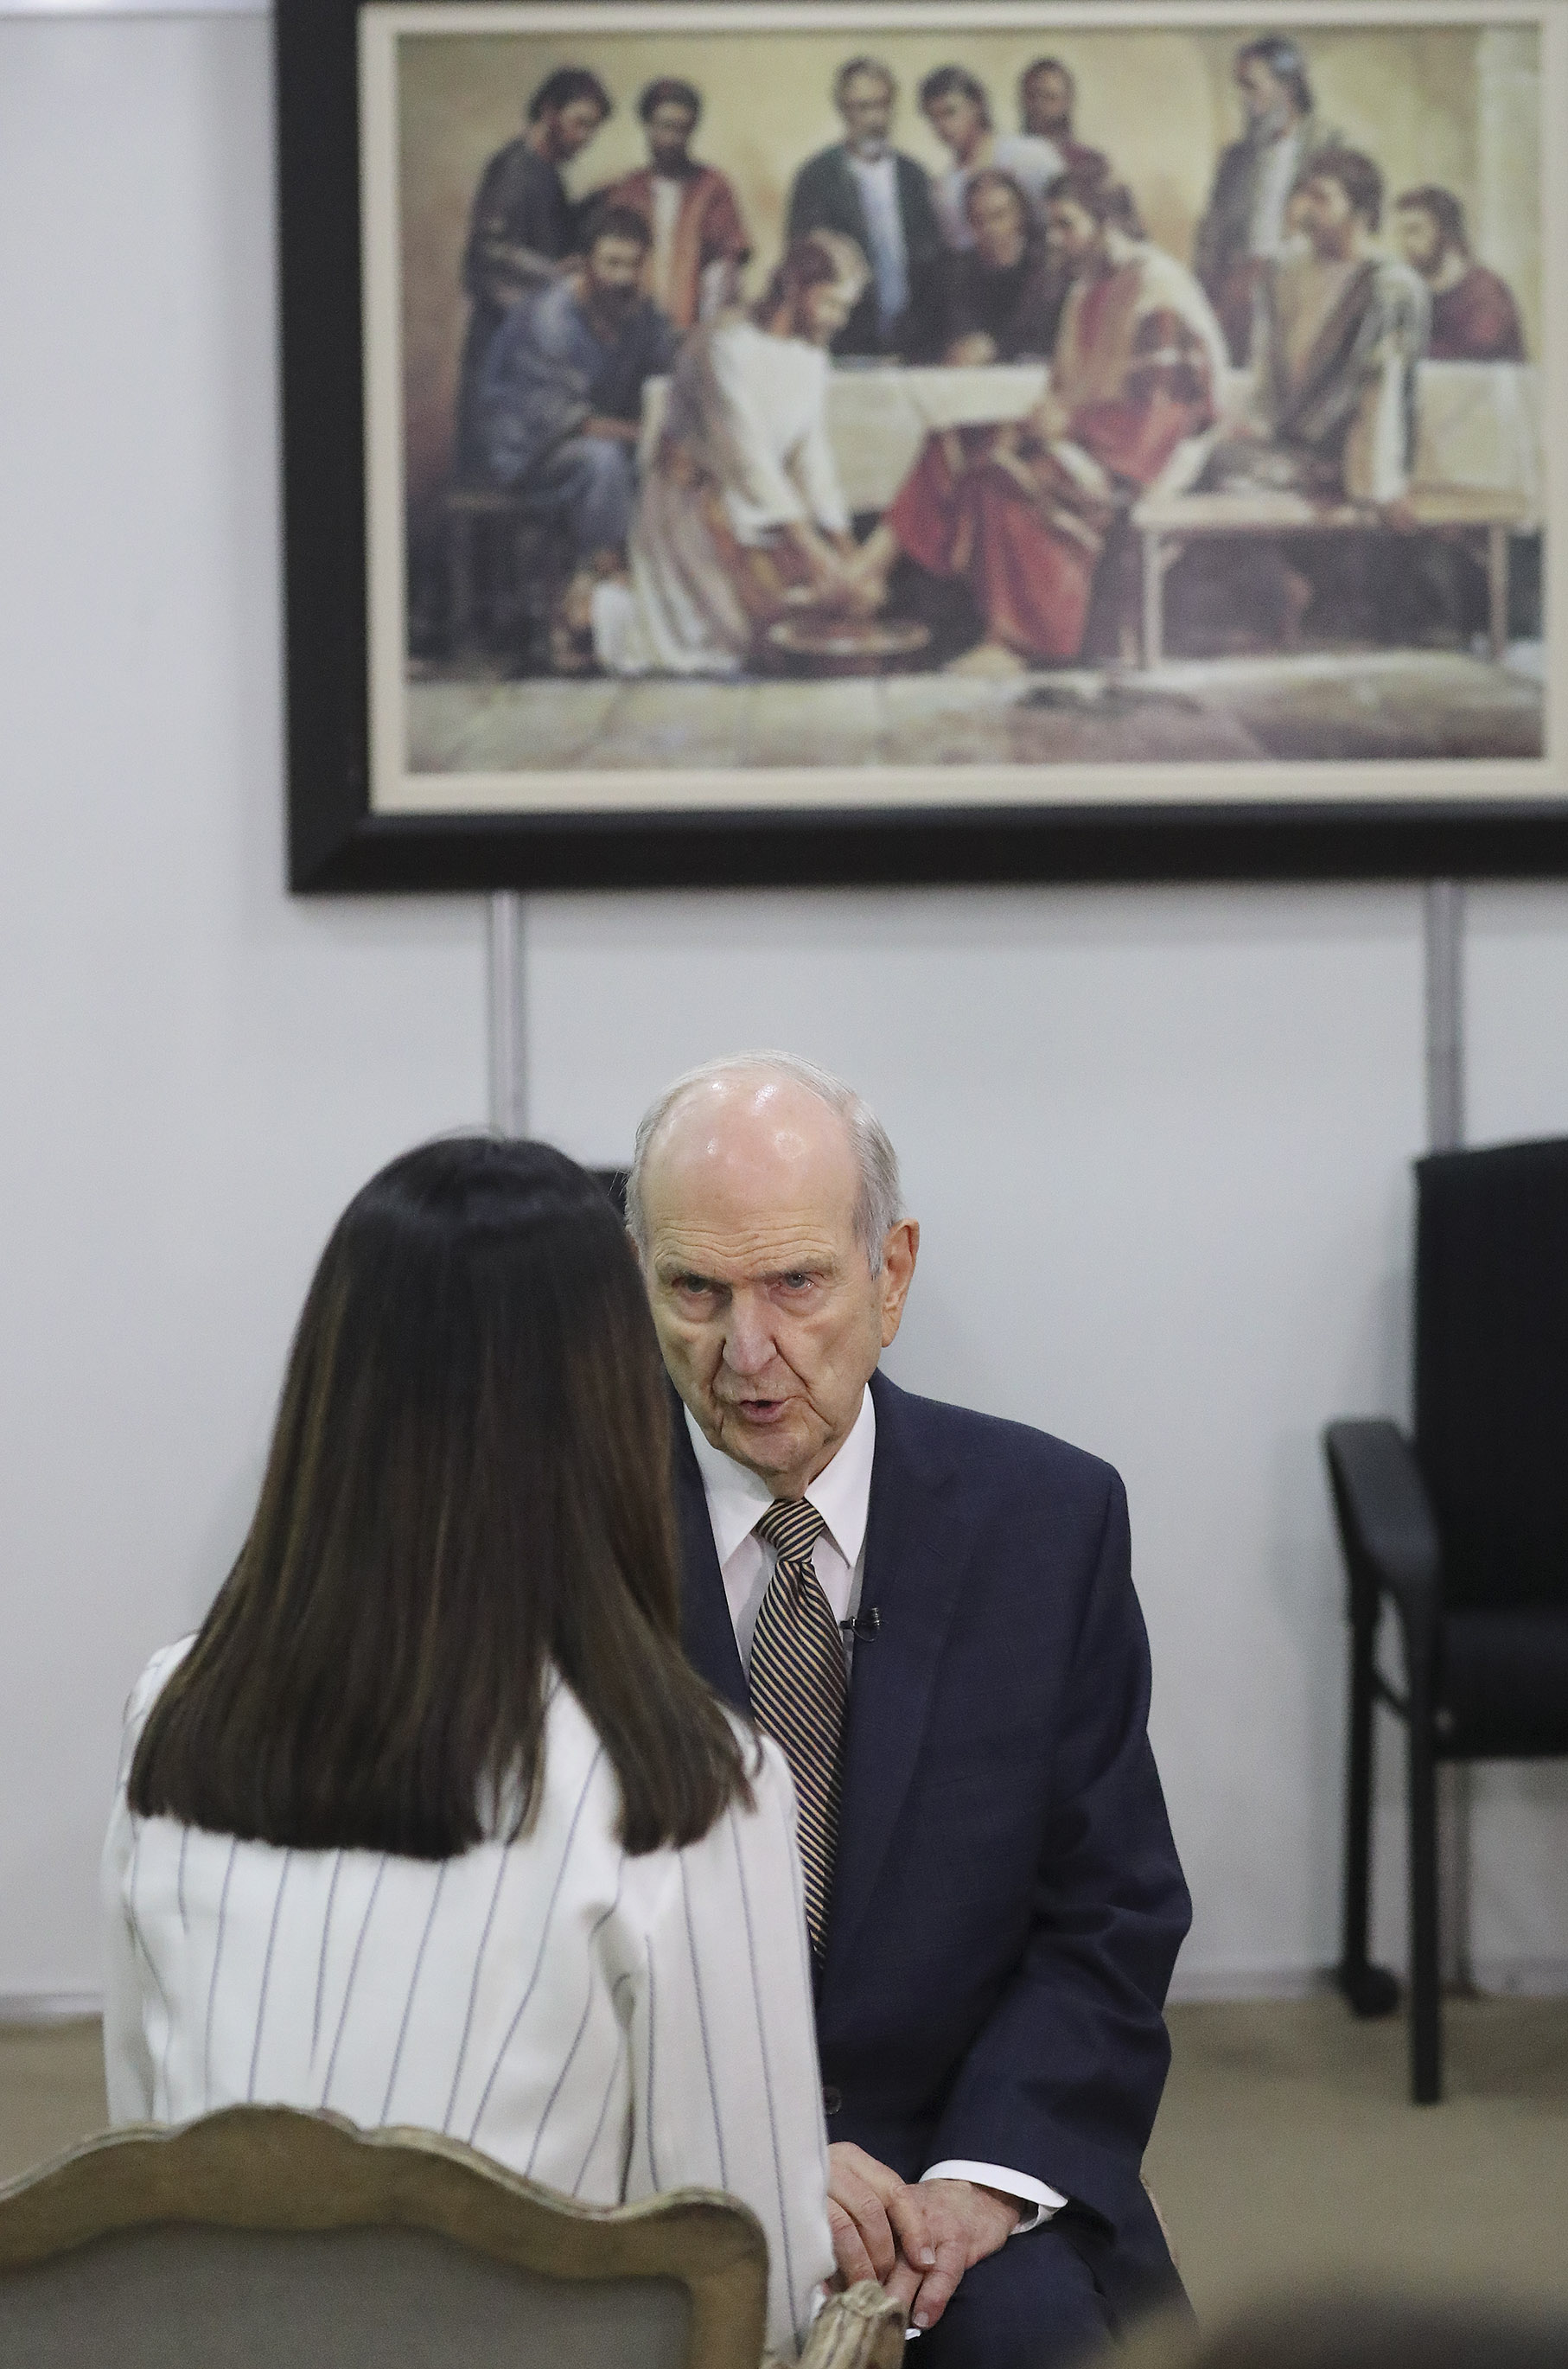 President Russell M. Nelson of The Church of Jesus Christ of Latter-day Saints is interviewed by TV journalist Isabela Tacaki prior to a devotional in Sao Paulo, Brazil, on Sunday, Sept. 1, 2019.